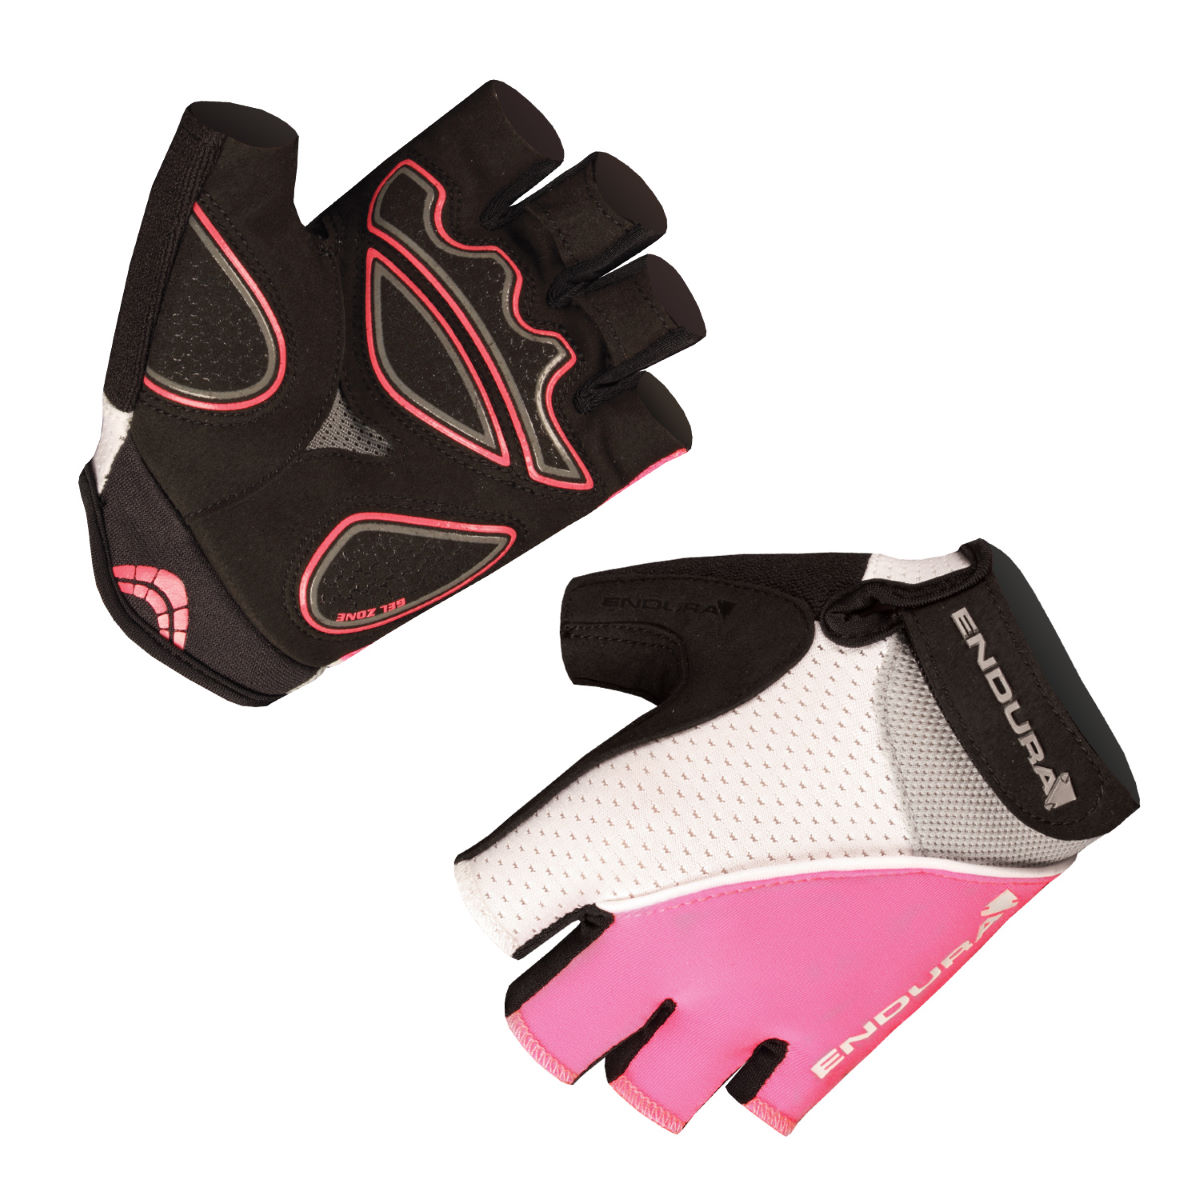 Gants courts Femme Endura Xtract - X Small Rose  Gants courts